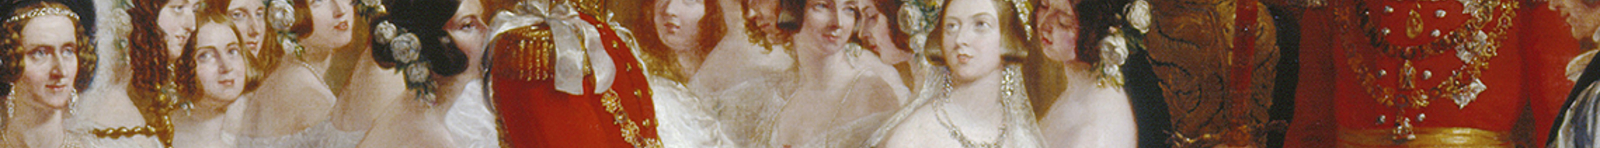 Detail from Hayter's painting of Victoria and Albert's marriage, showing the pair holding hands at the alter with onlookers in the background